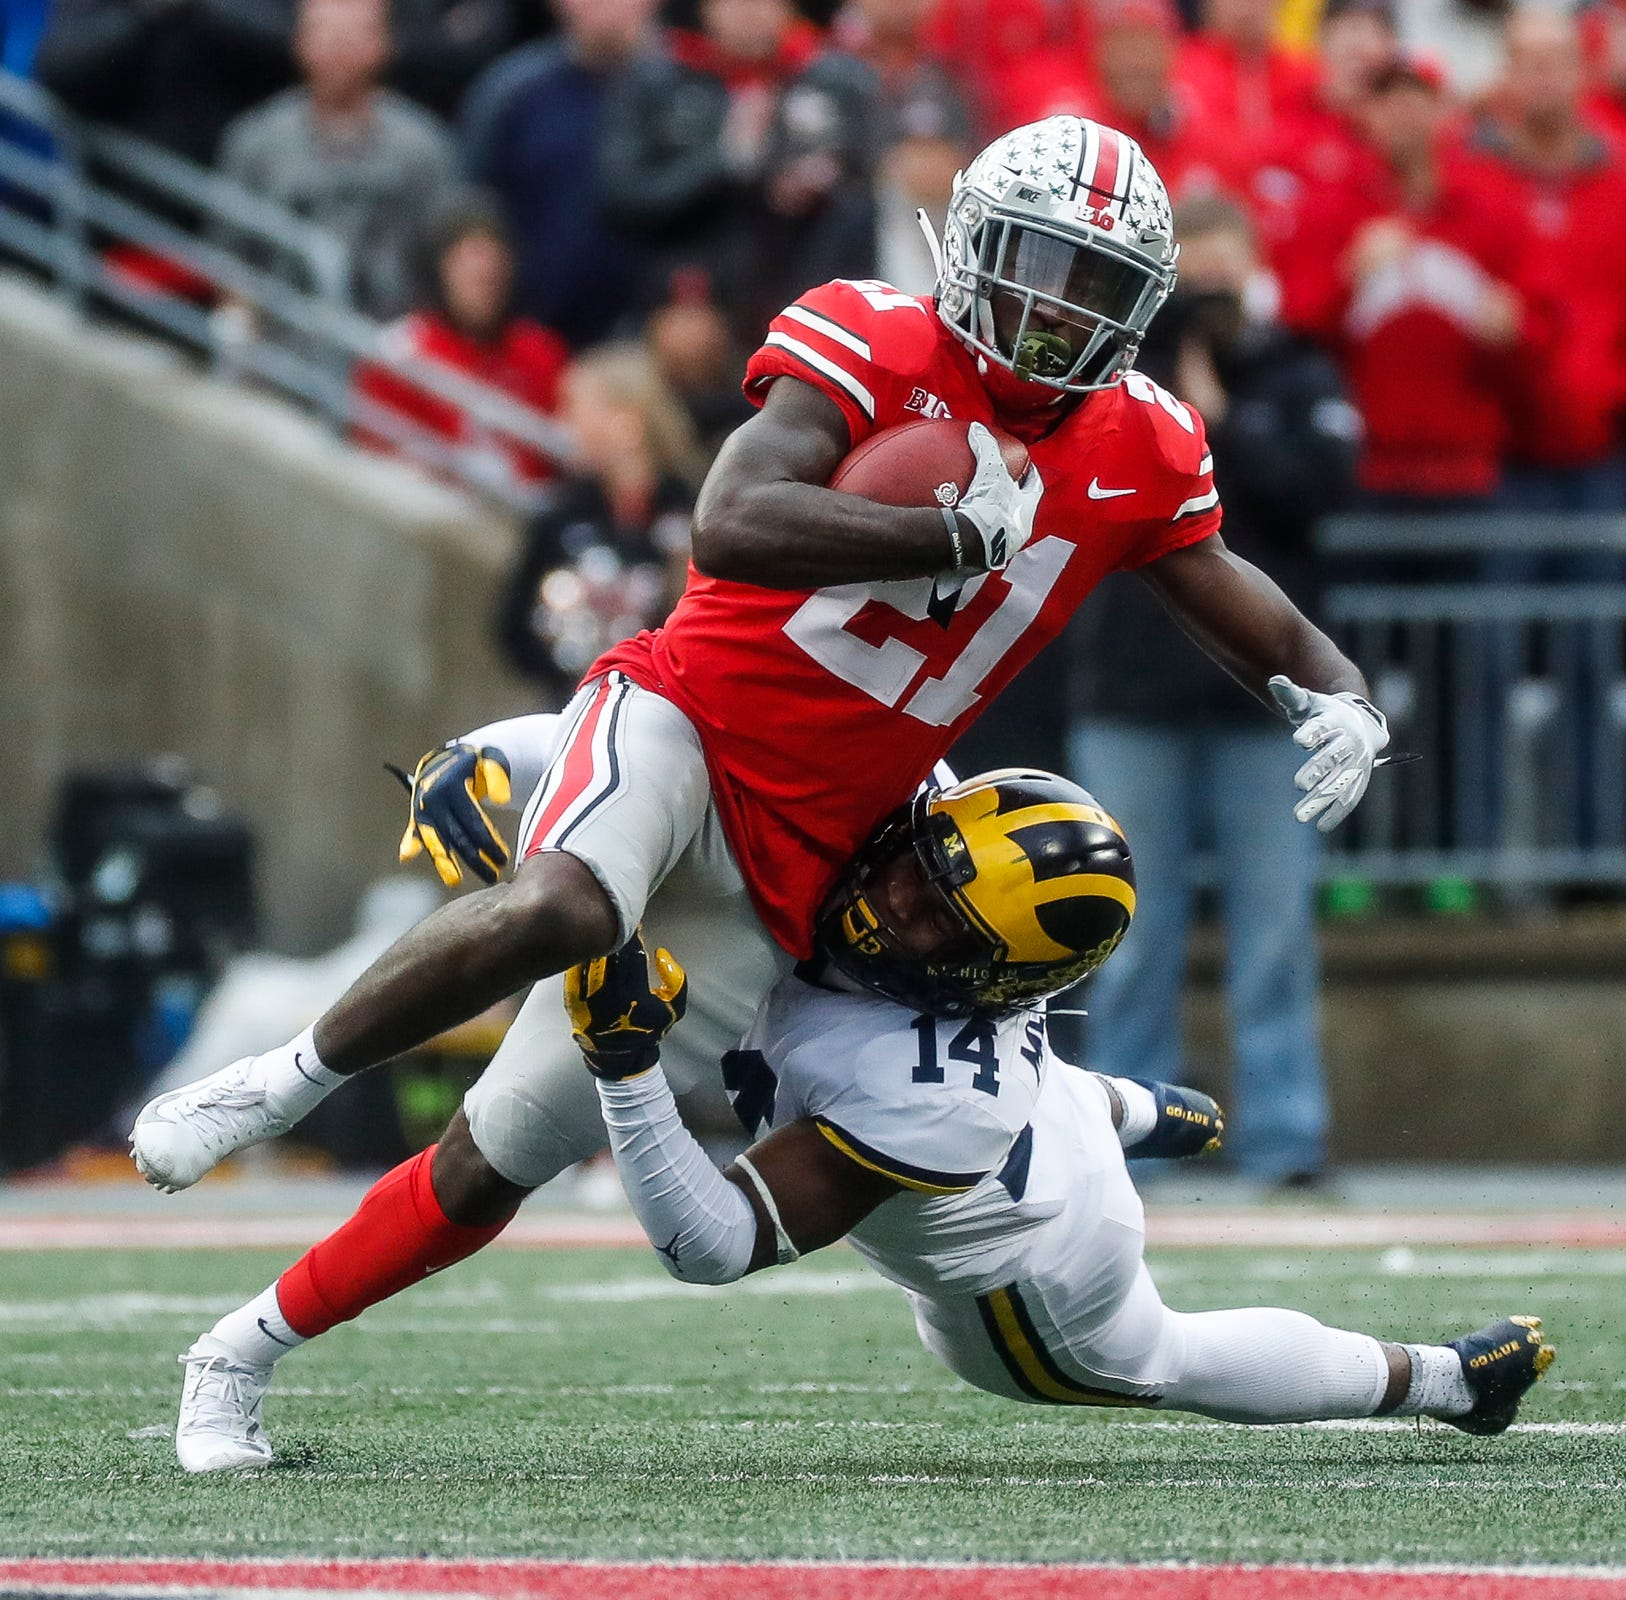 Parris Campbell was productive playing out of the slot for the Buckeyes, and the Lions need a replacement for Golden Tate.